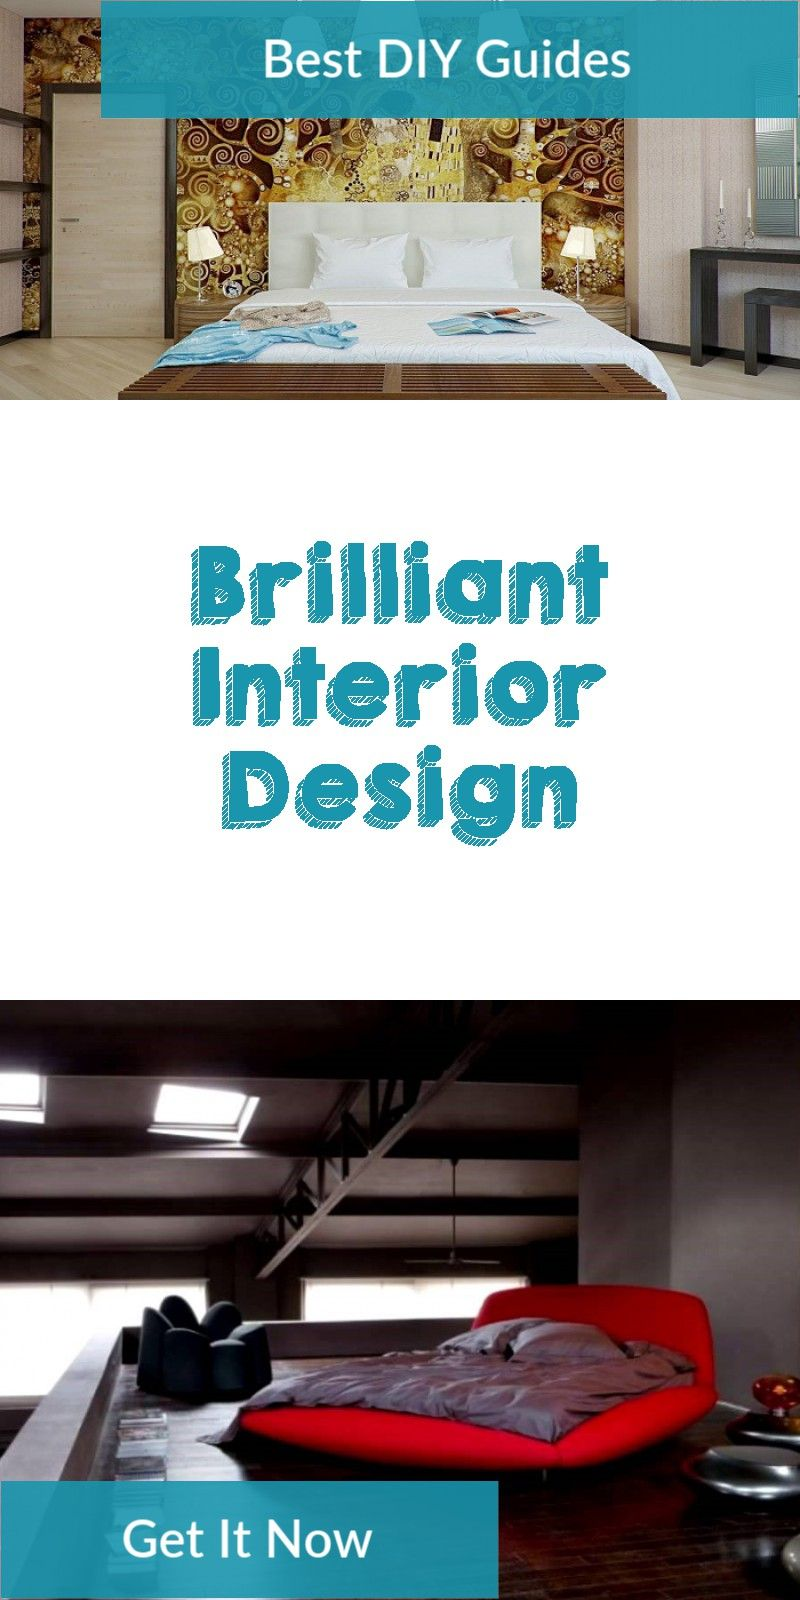 Interior Design Your Very Own Personal